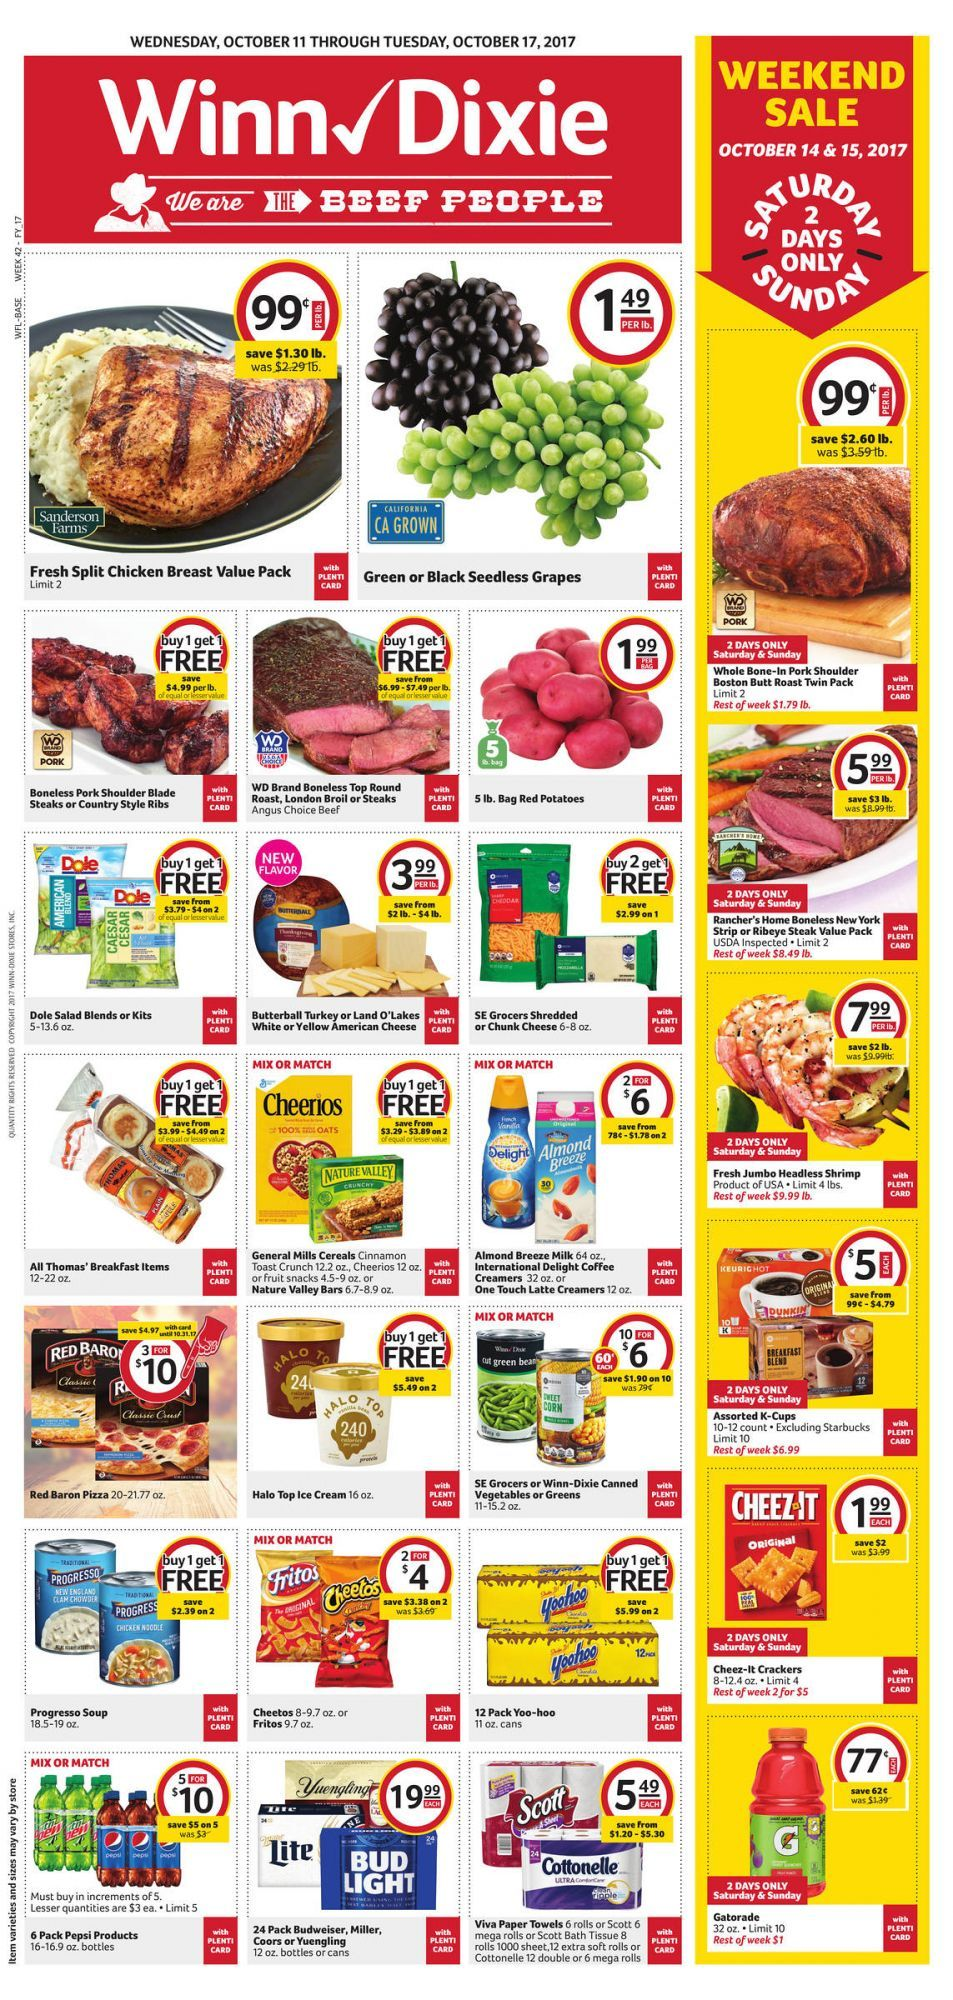 WinnDixie Weekly Ad October 11 17 grocery savings WinnDixie